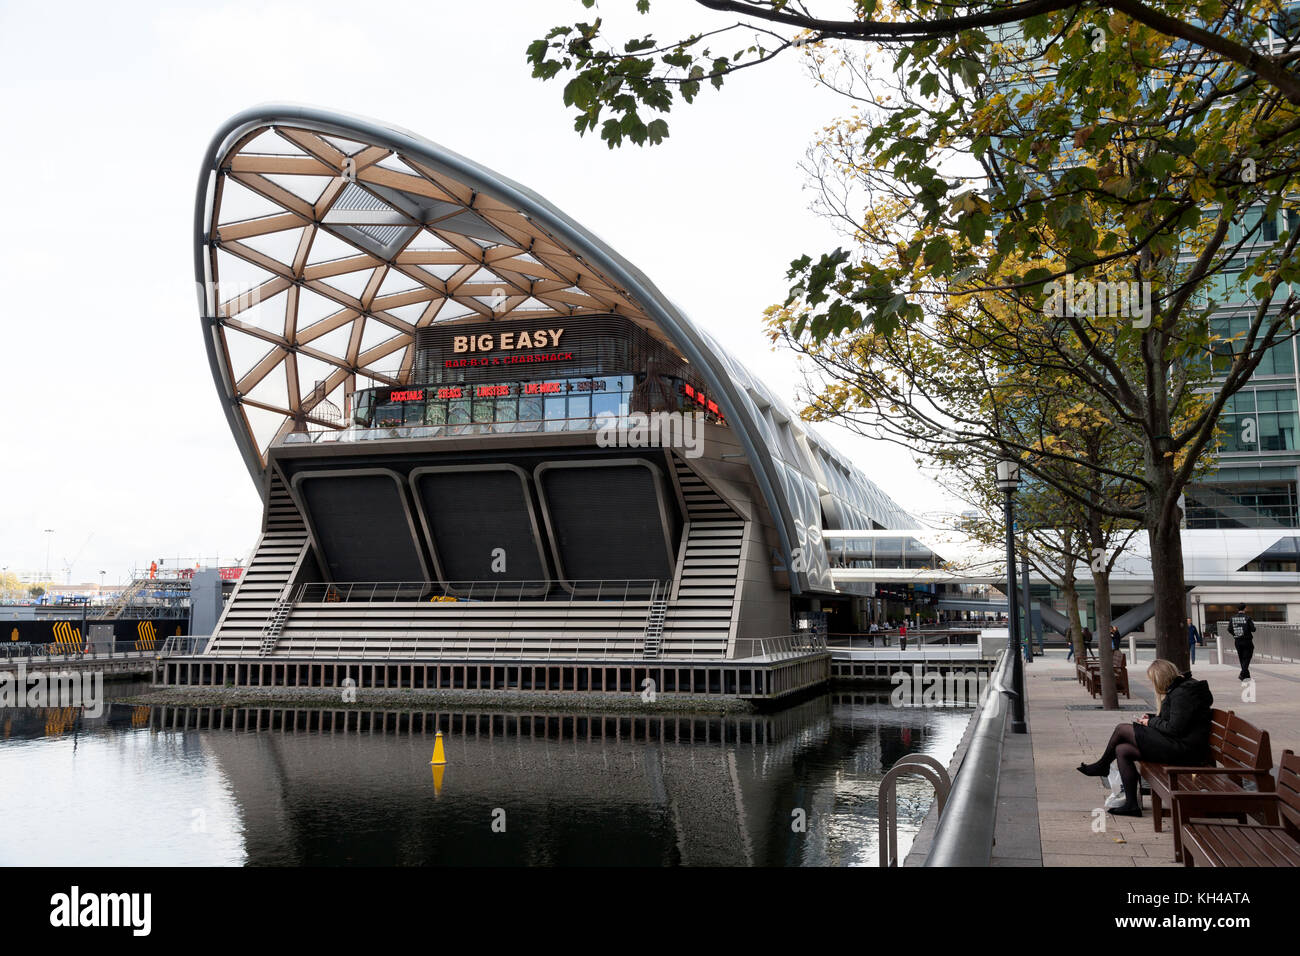 'Big Easy' dockside restaurant at Canary Wharf, London - Stock Image